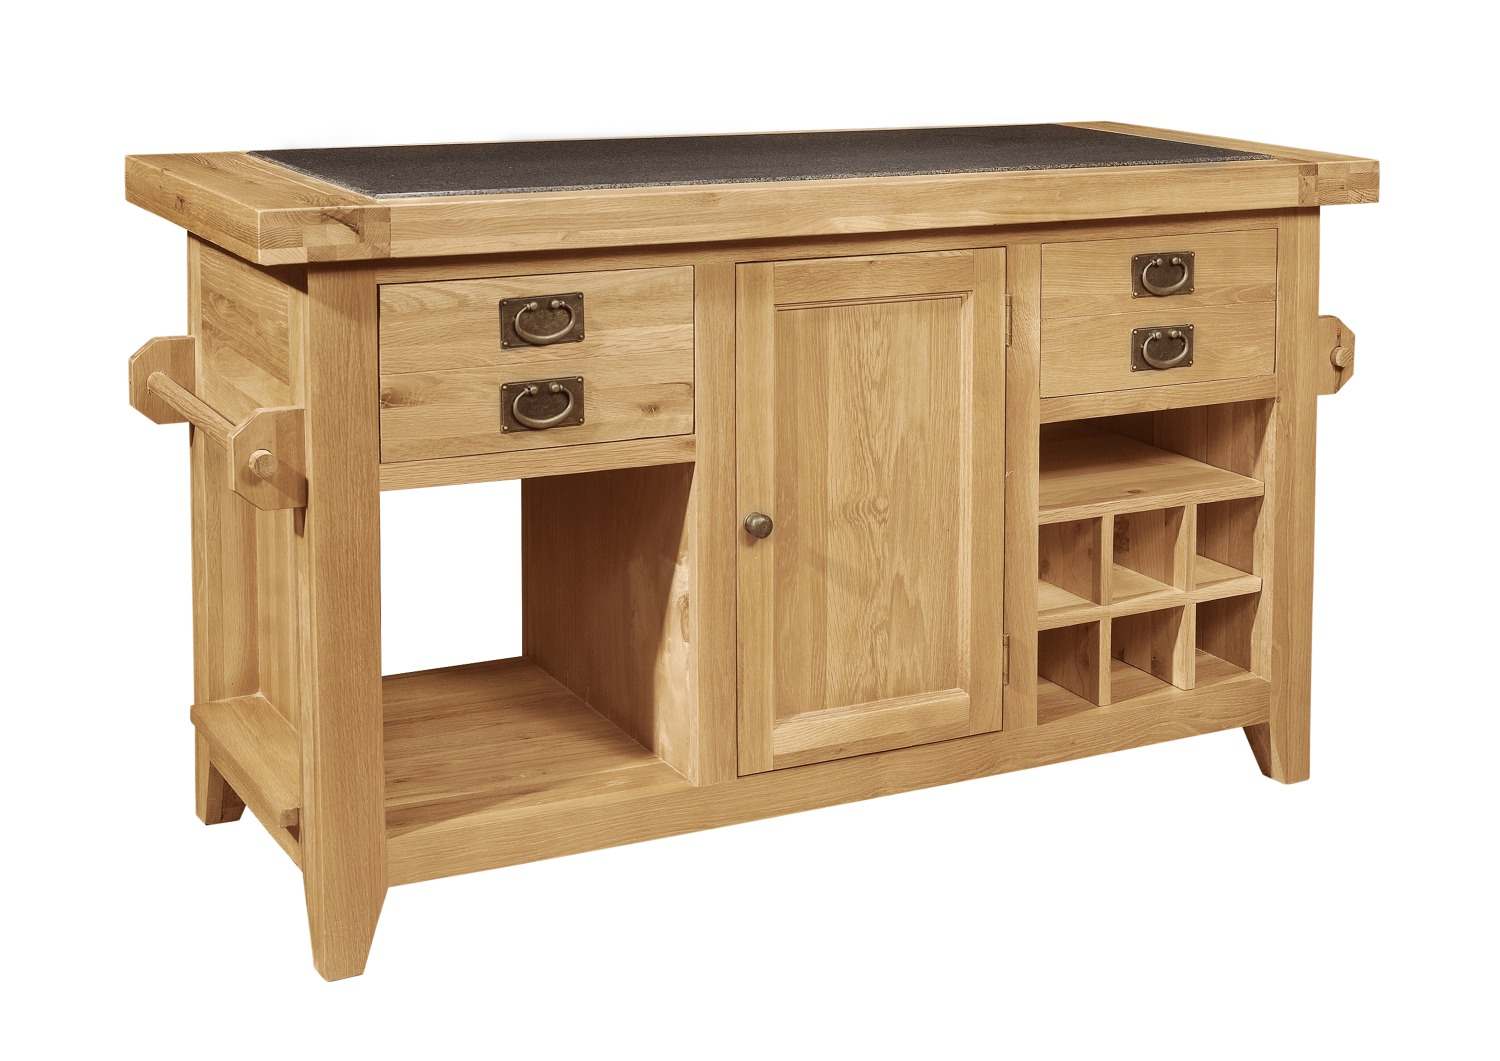 Panama Solid Oak Furniture Large Granite Top Freestanding